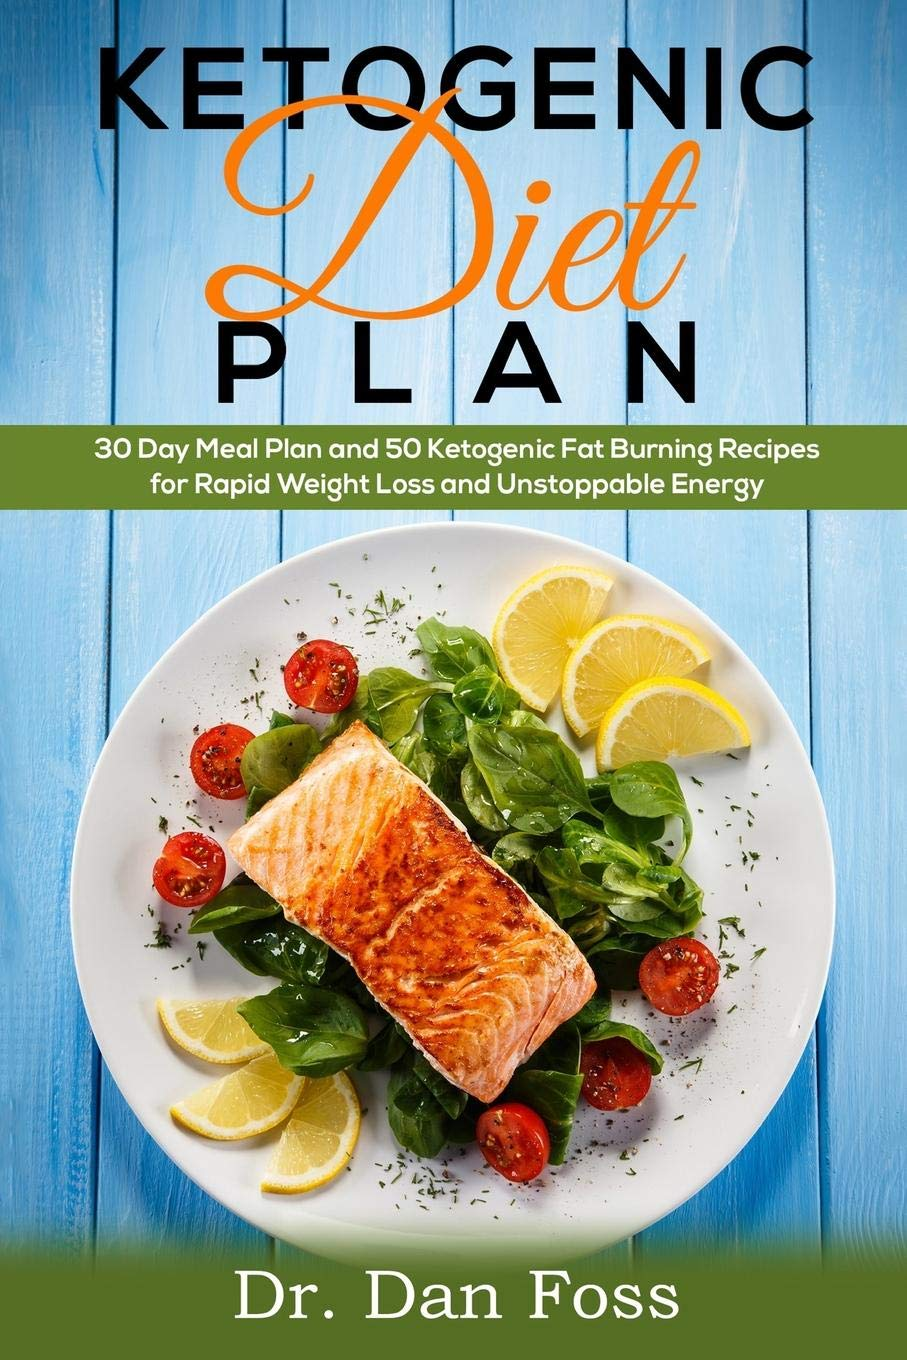 KETOGENIC DIET PLAN 30 DAY MEAL PLAN 50 KETOGENIC FAT